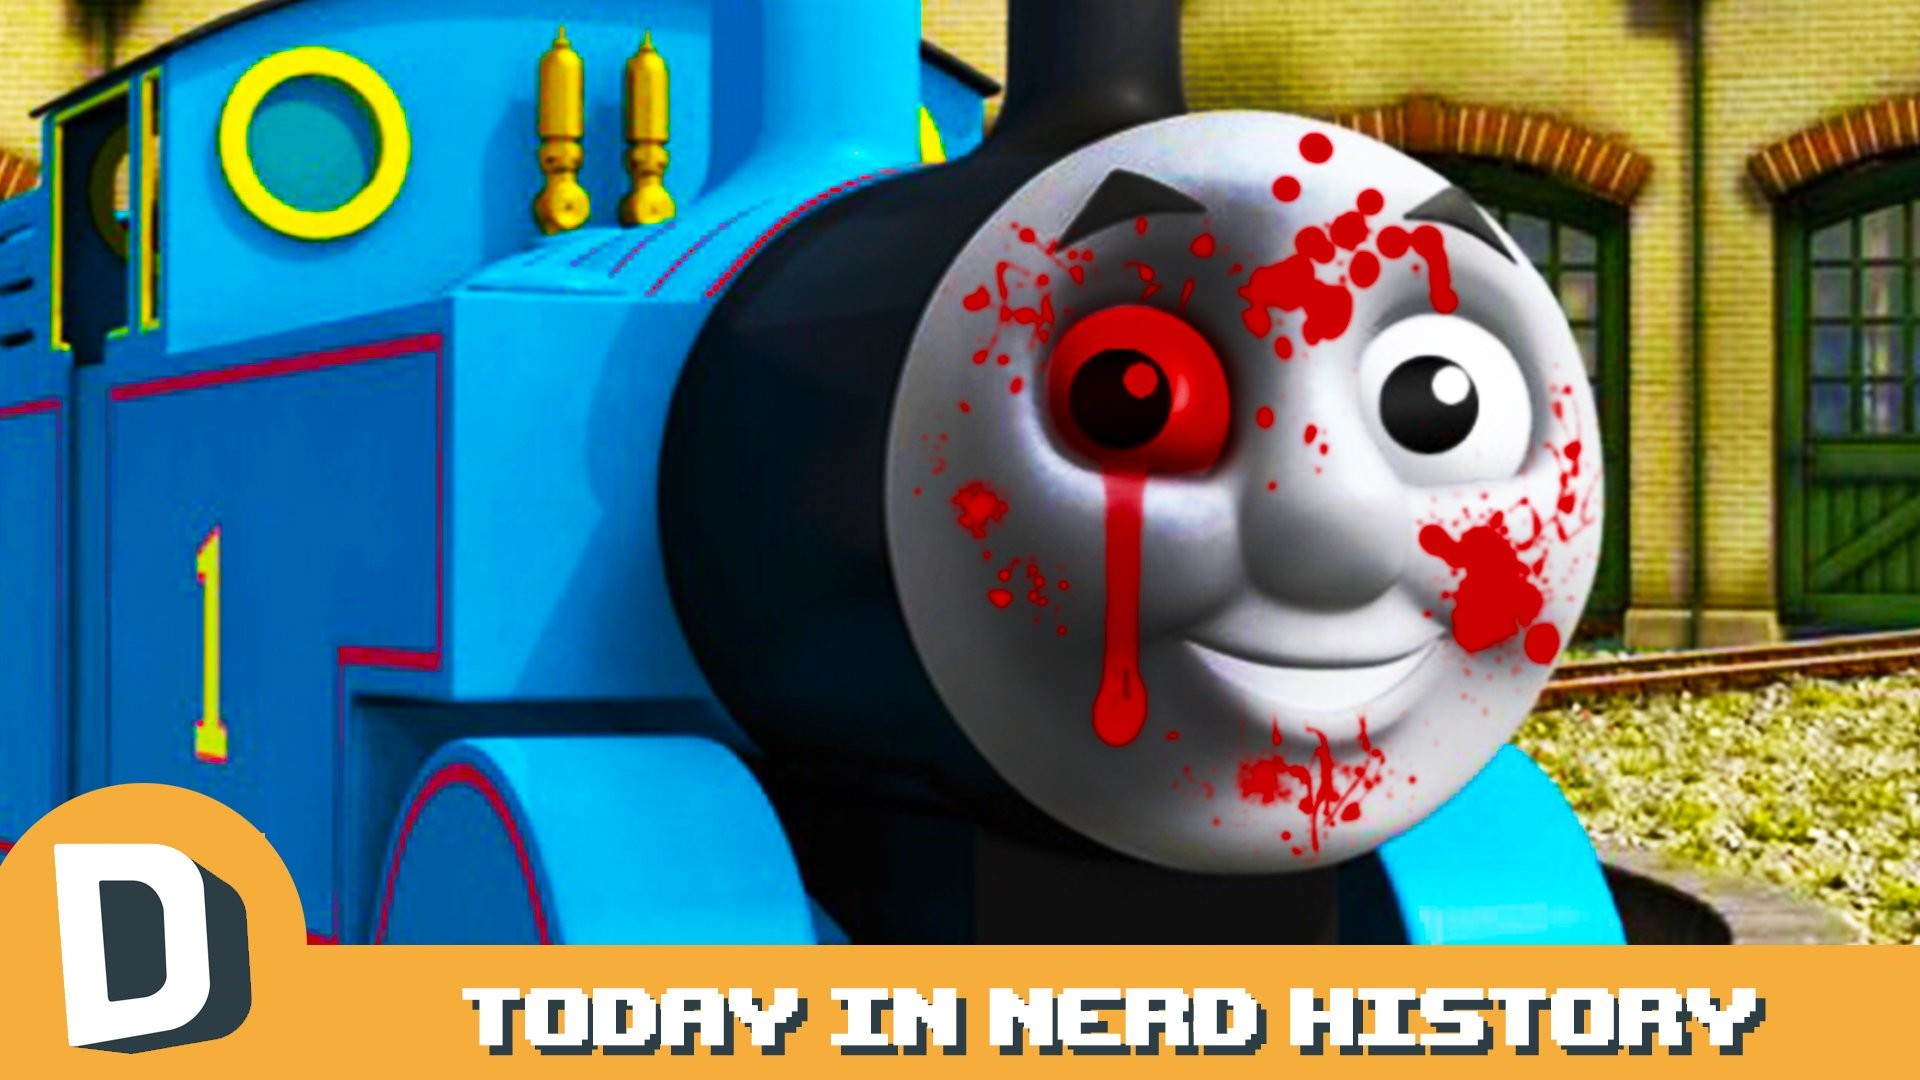 1920x1080 5 Creepy Thomas the Tank Engine Episodes Worse than any Horror Movie -  Dorkly Video